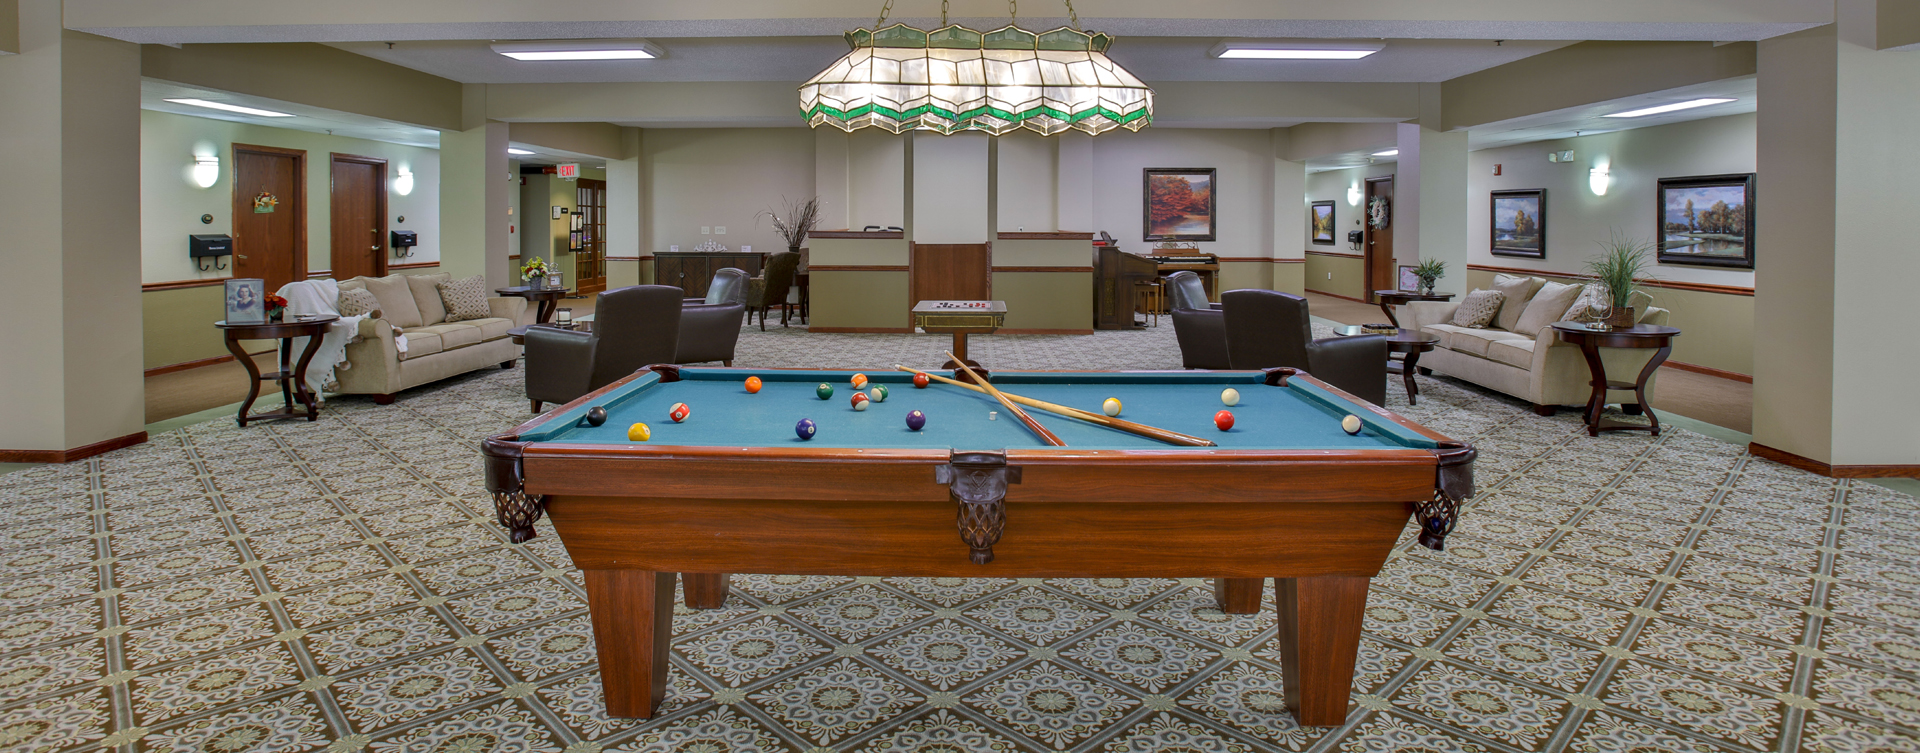 Enjoy a game of pool with friends at Bickford of Bloomington